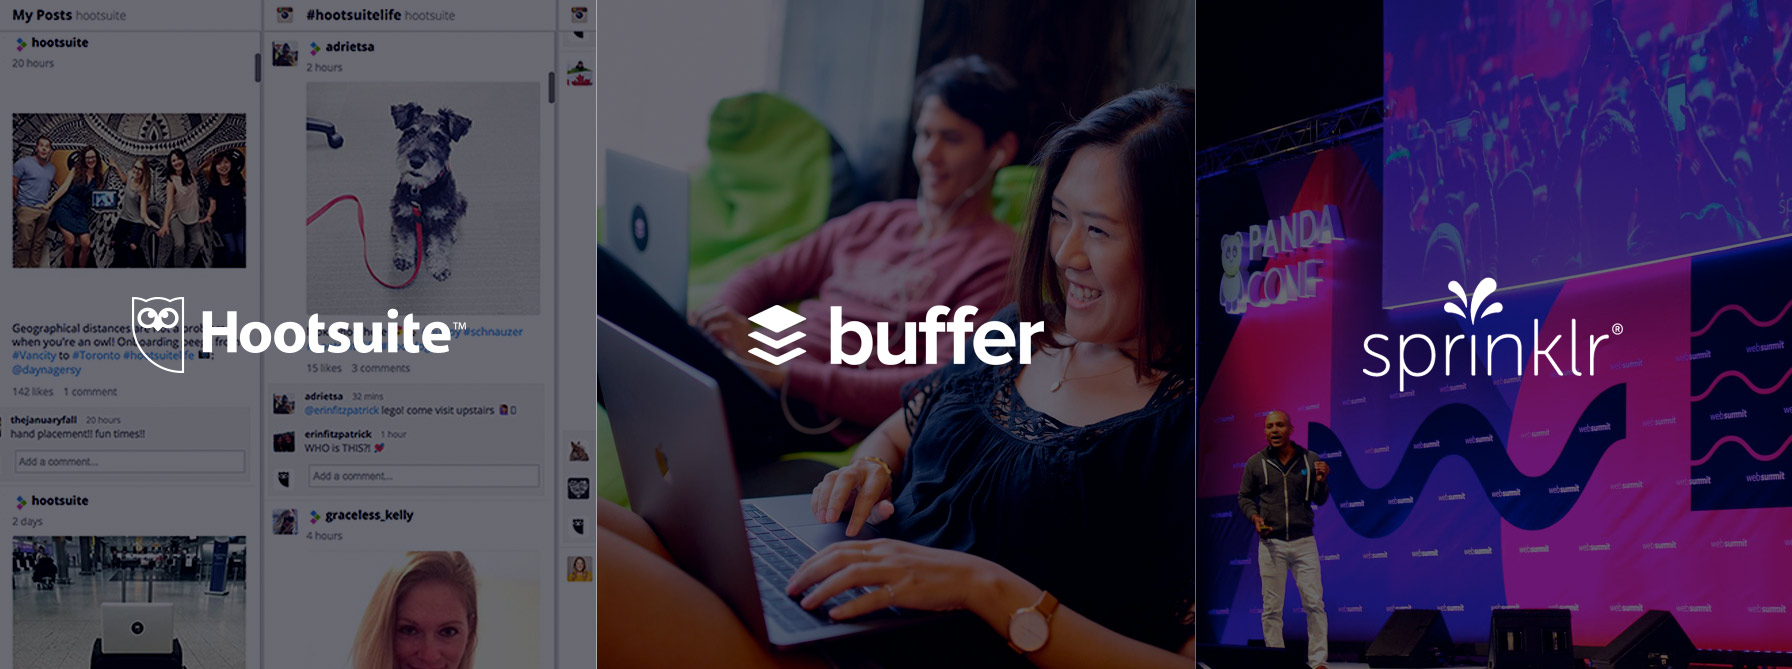 Hootsuite, Buffer and Sprinklr compared - The Dubs